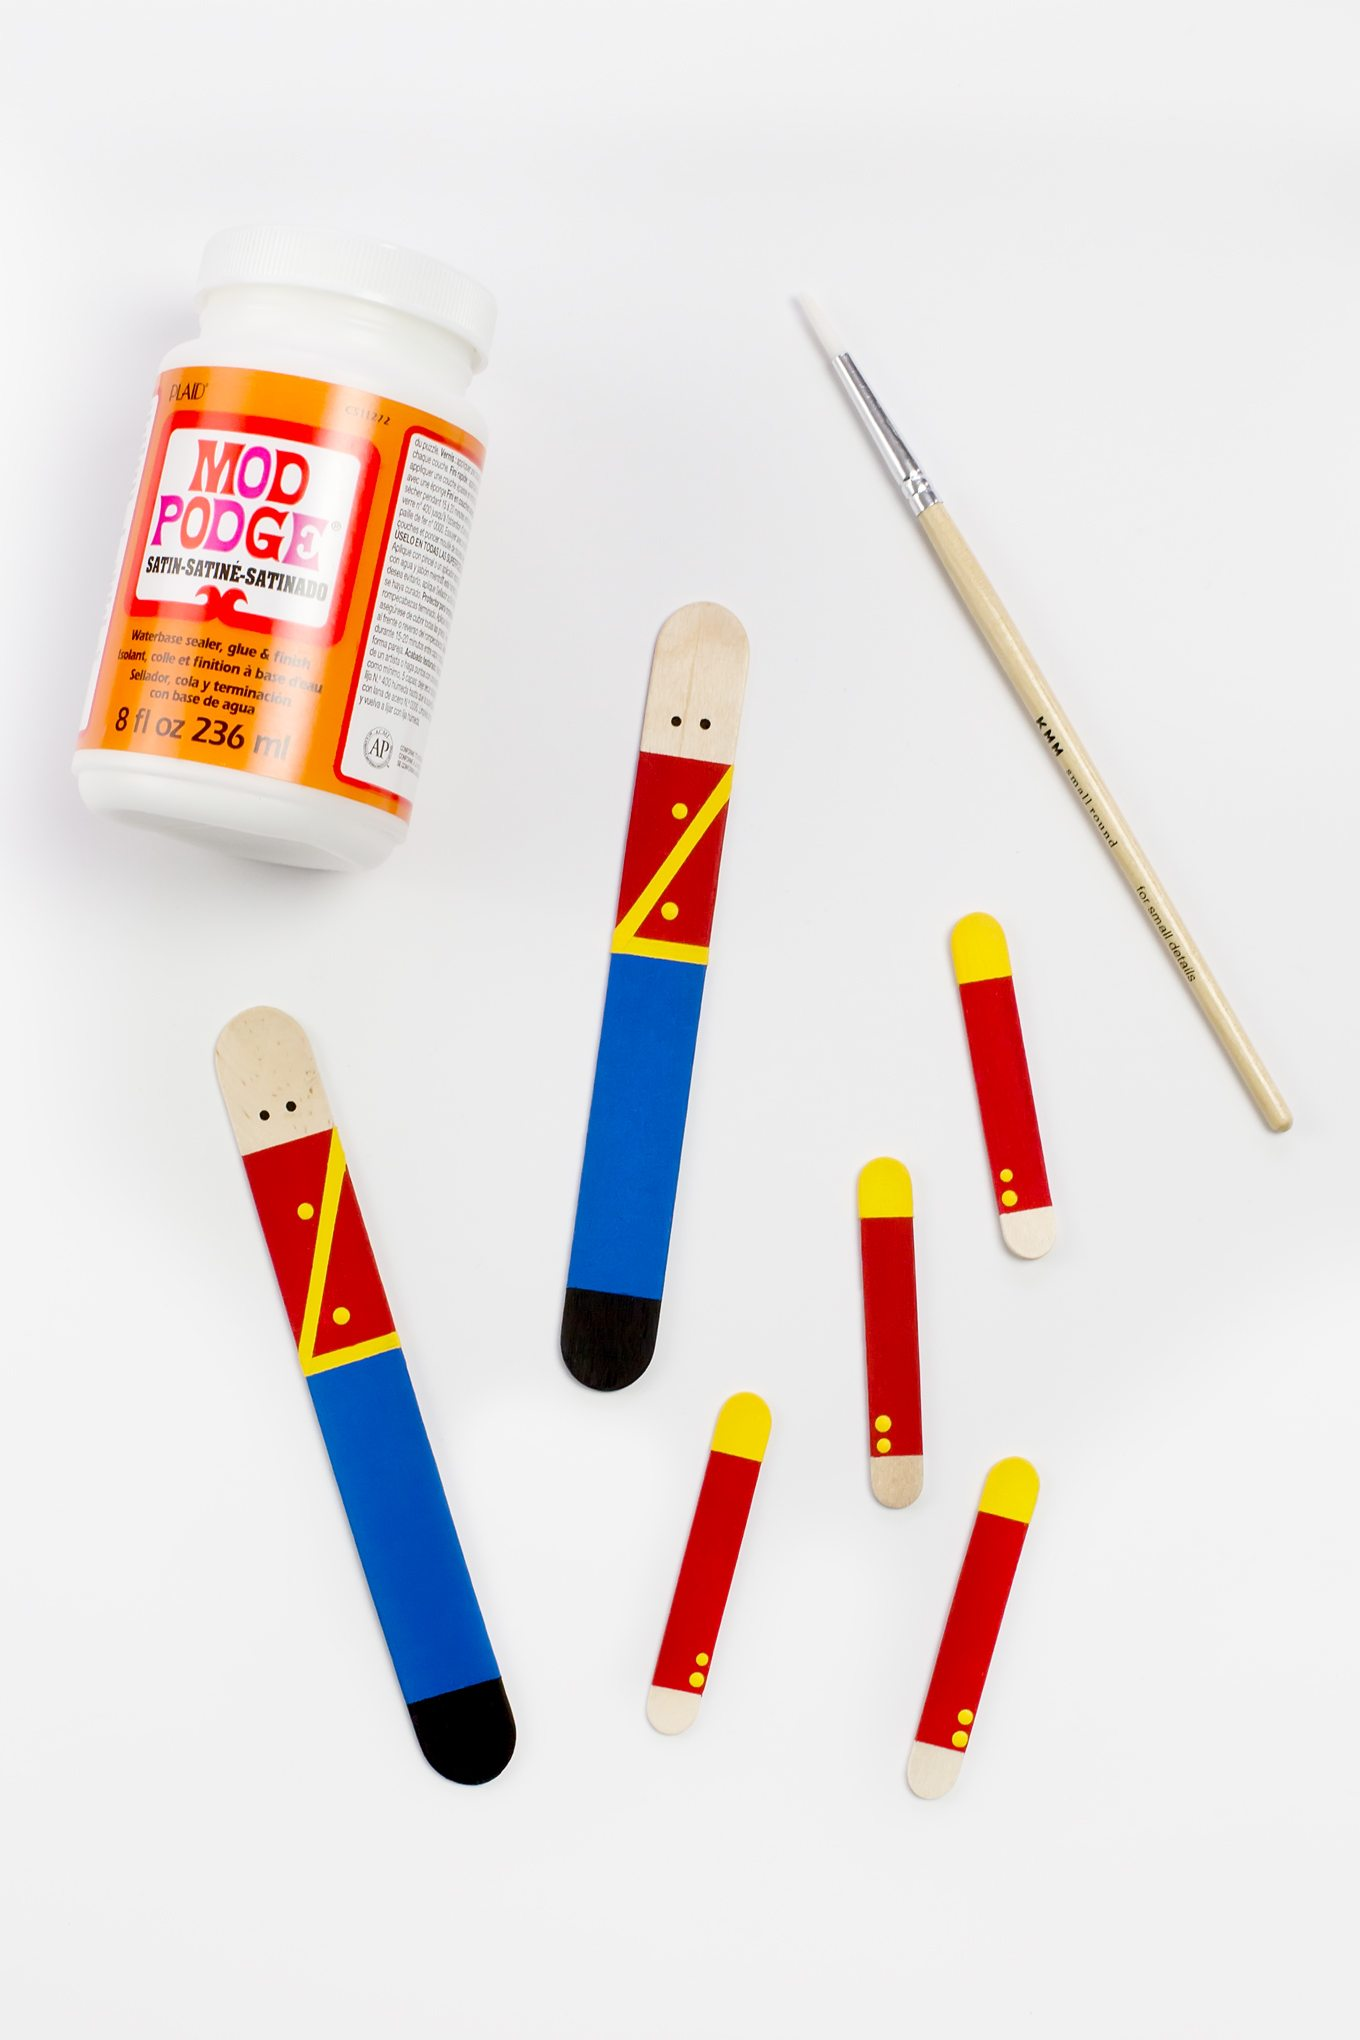 Crafters big and small will delight in making a Wooden Toy Soldier Ornament with craft sticks, paint, and one extra unique craft material.